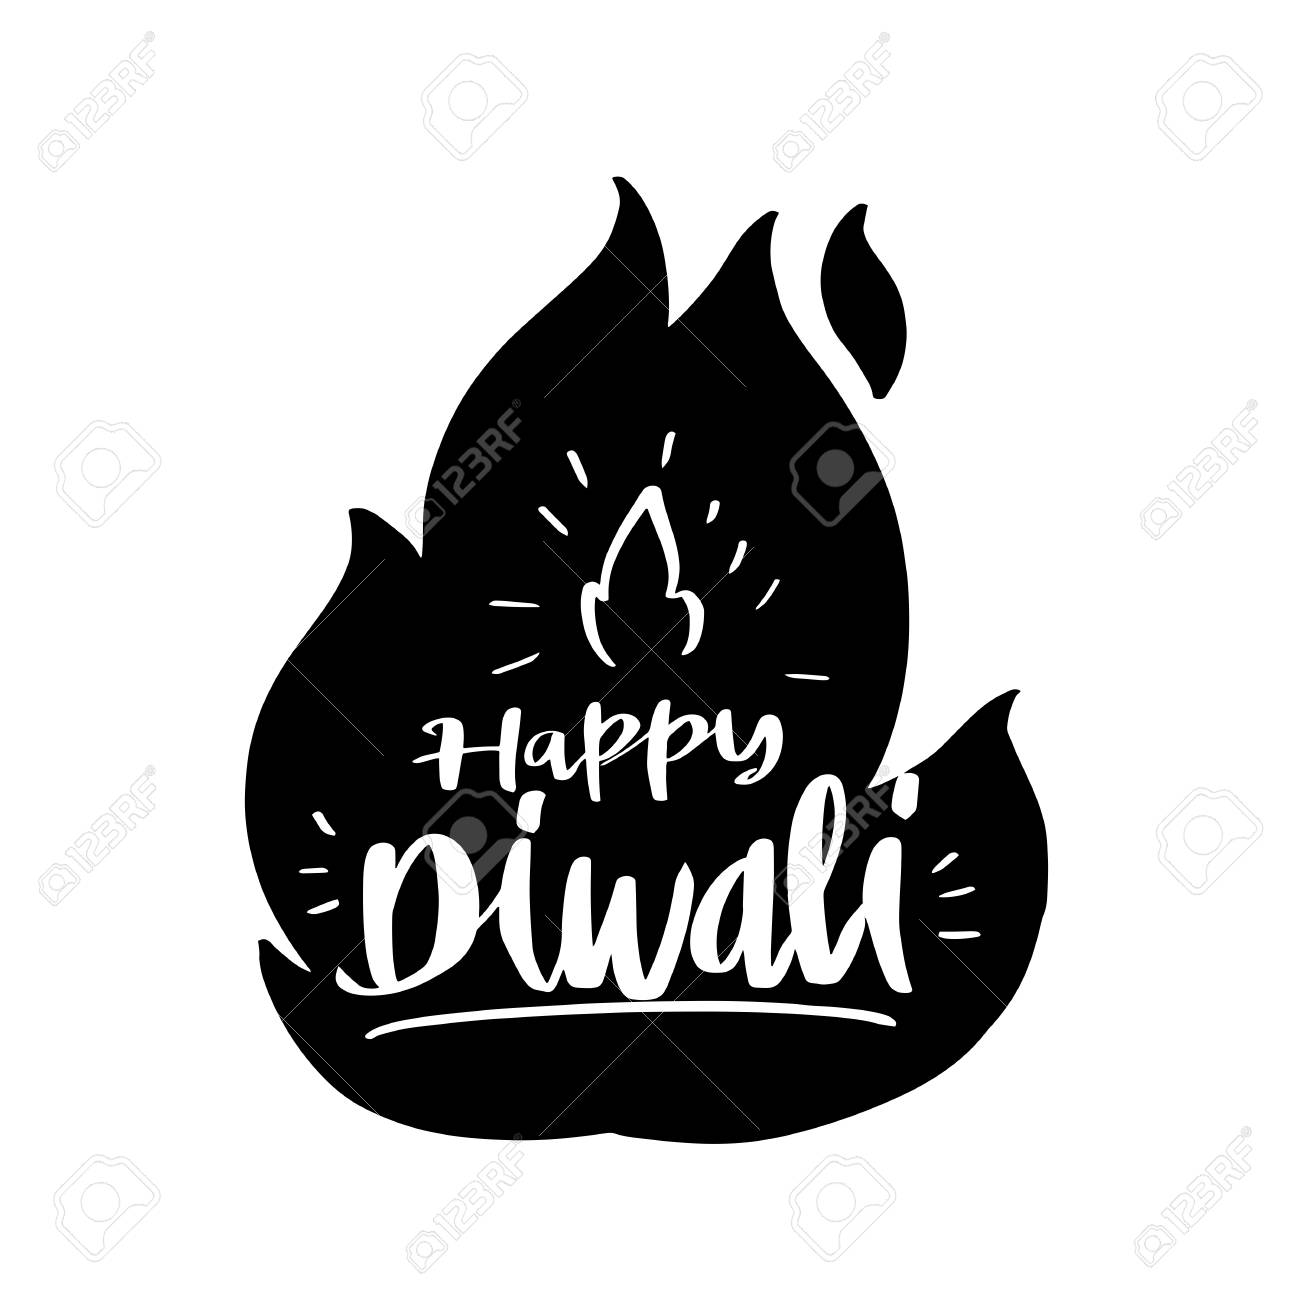 30  Best Deepavali Lamp Clipart Black And for Deepavali Lamp Black And White  287fsj